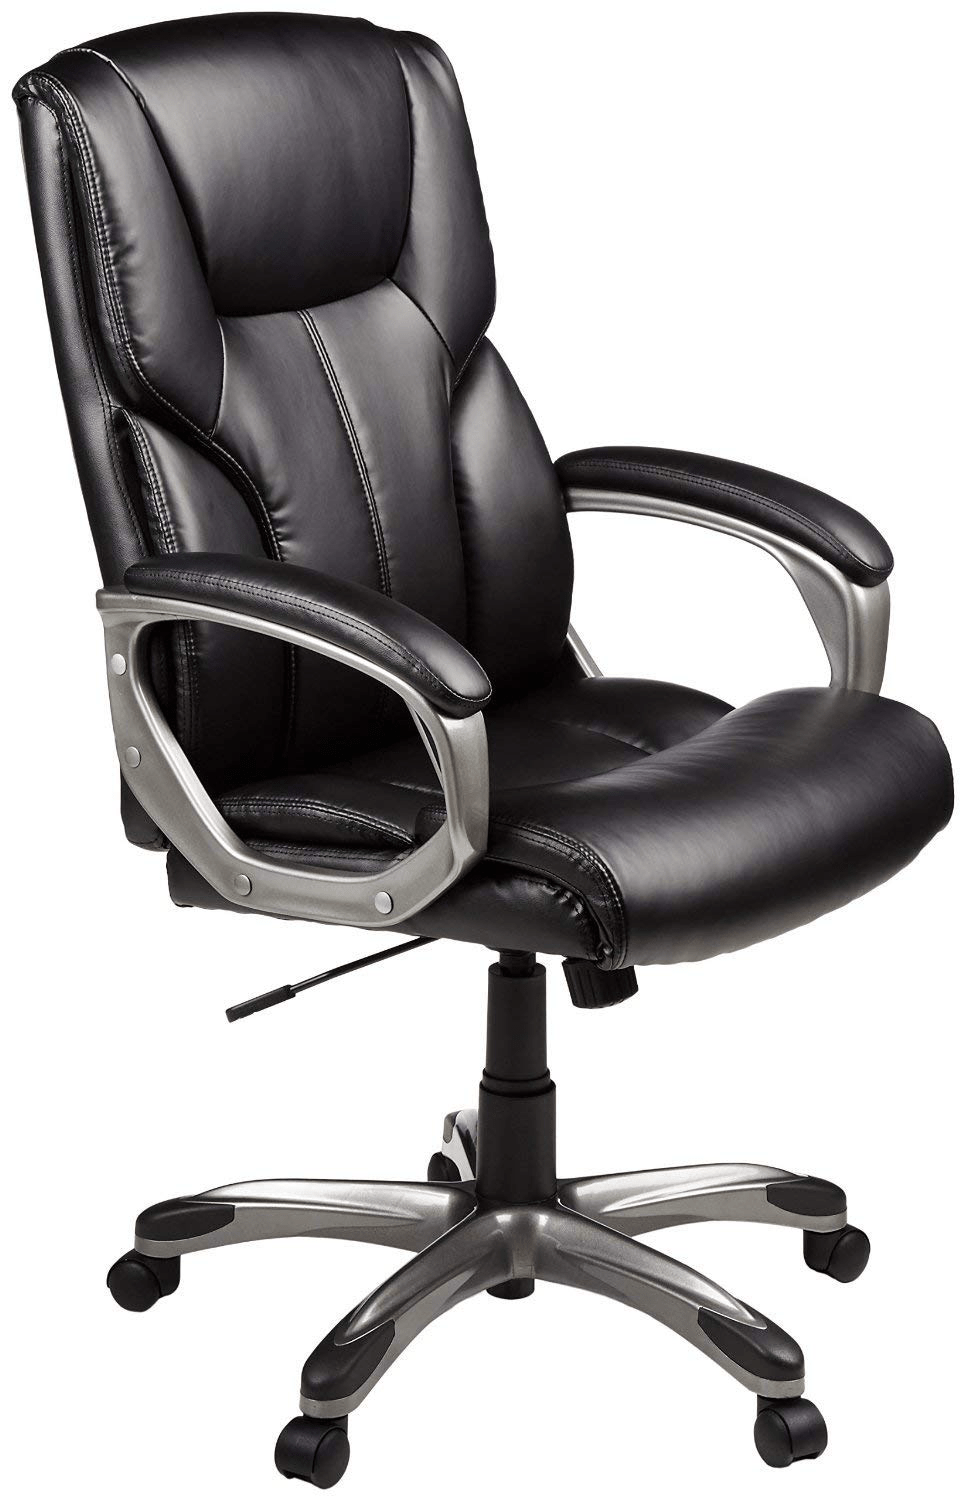 Best Office Chair To Buy on Amazon